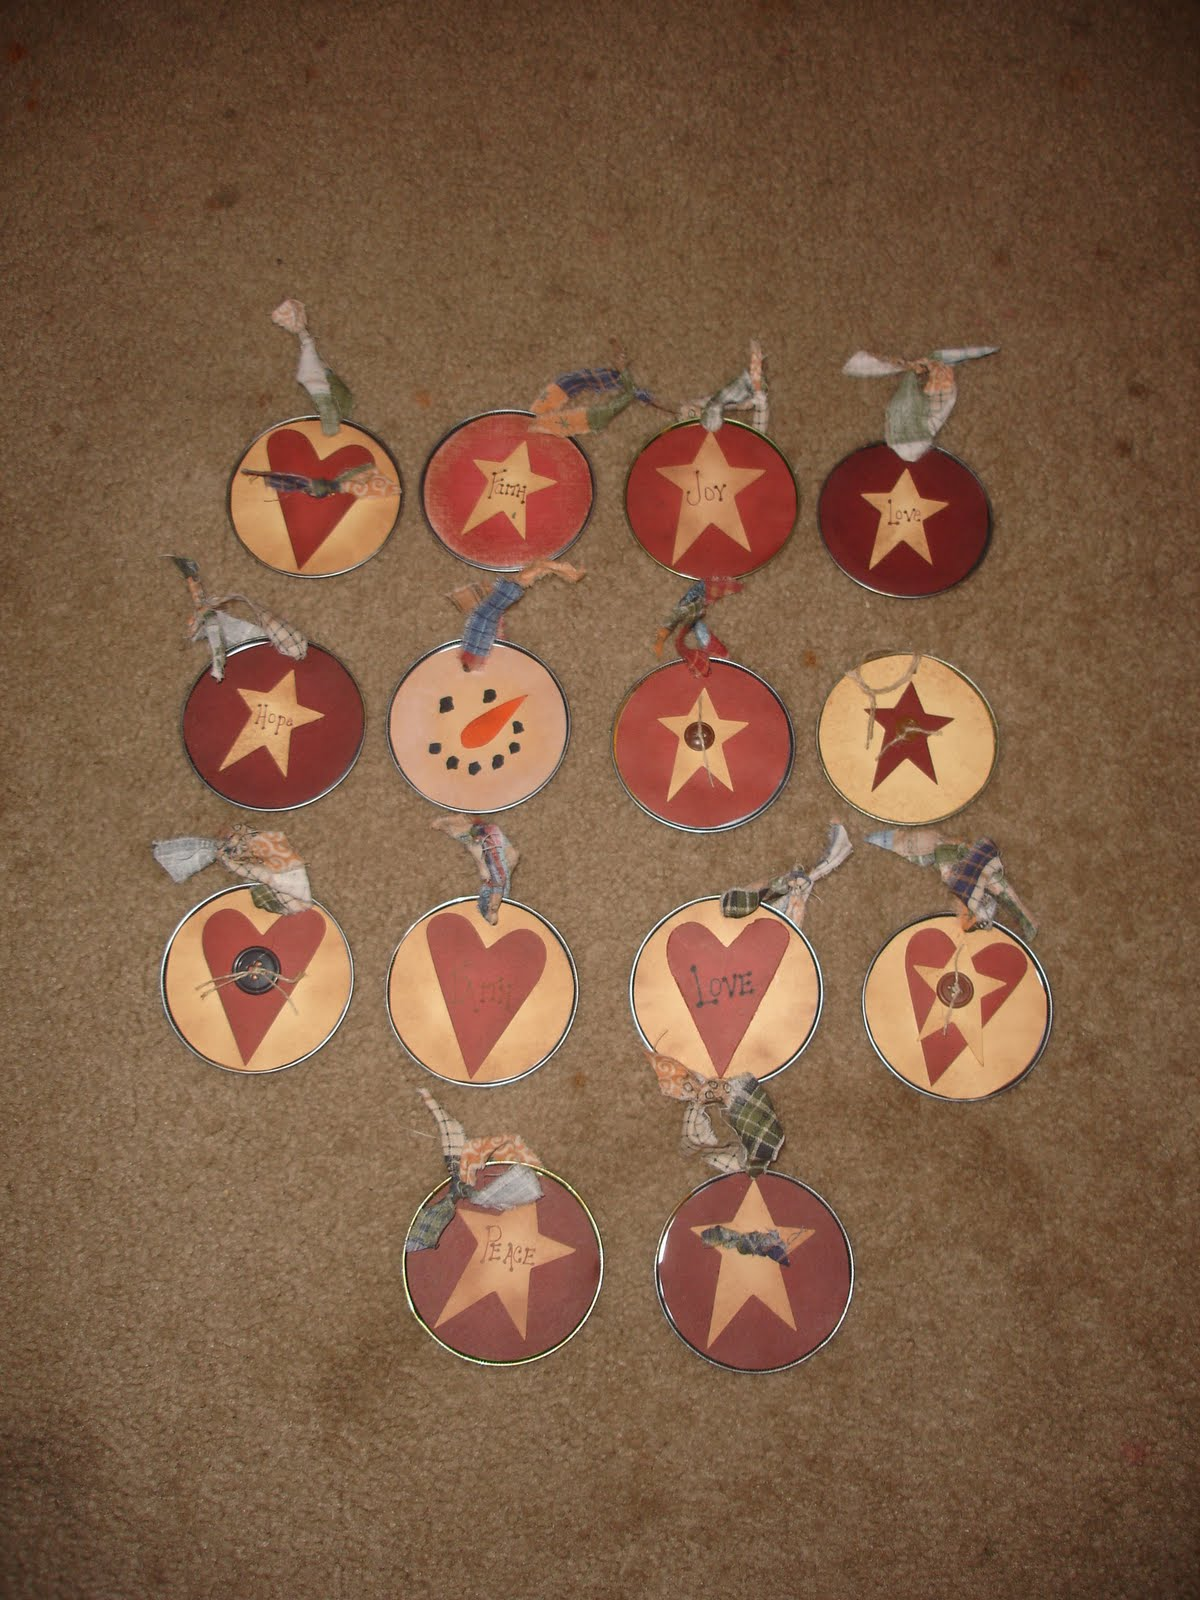 Primitive christmas ornaments - Btw My Favorite Ornaments Are The Clothespin Snowmen In The Far Left Photo In The Bottom Row They Were Fun Easy And Super Cute